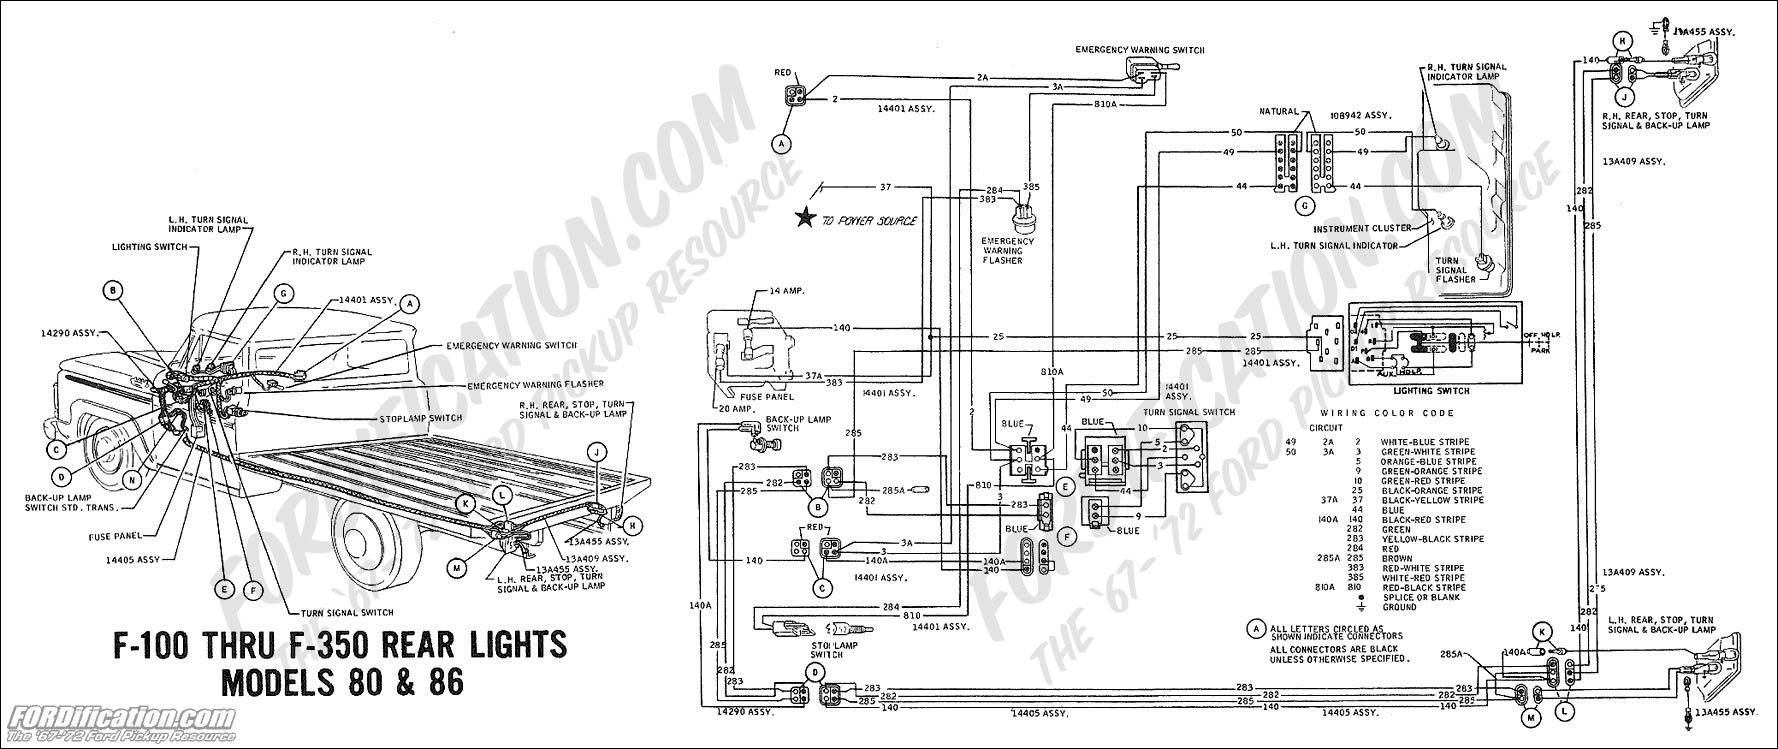 ford truck technical drawings and schematics section h wiring rh fordification com 2005 Ford F350 Wiring Diagram Ford F-350 Wiring Schematic